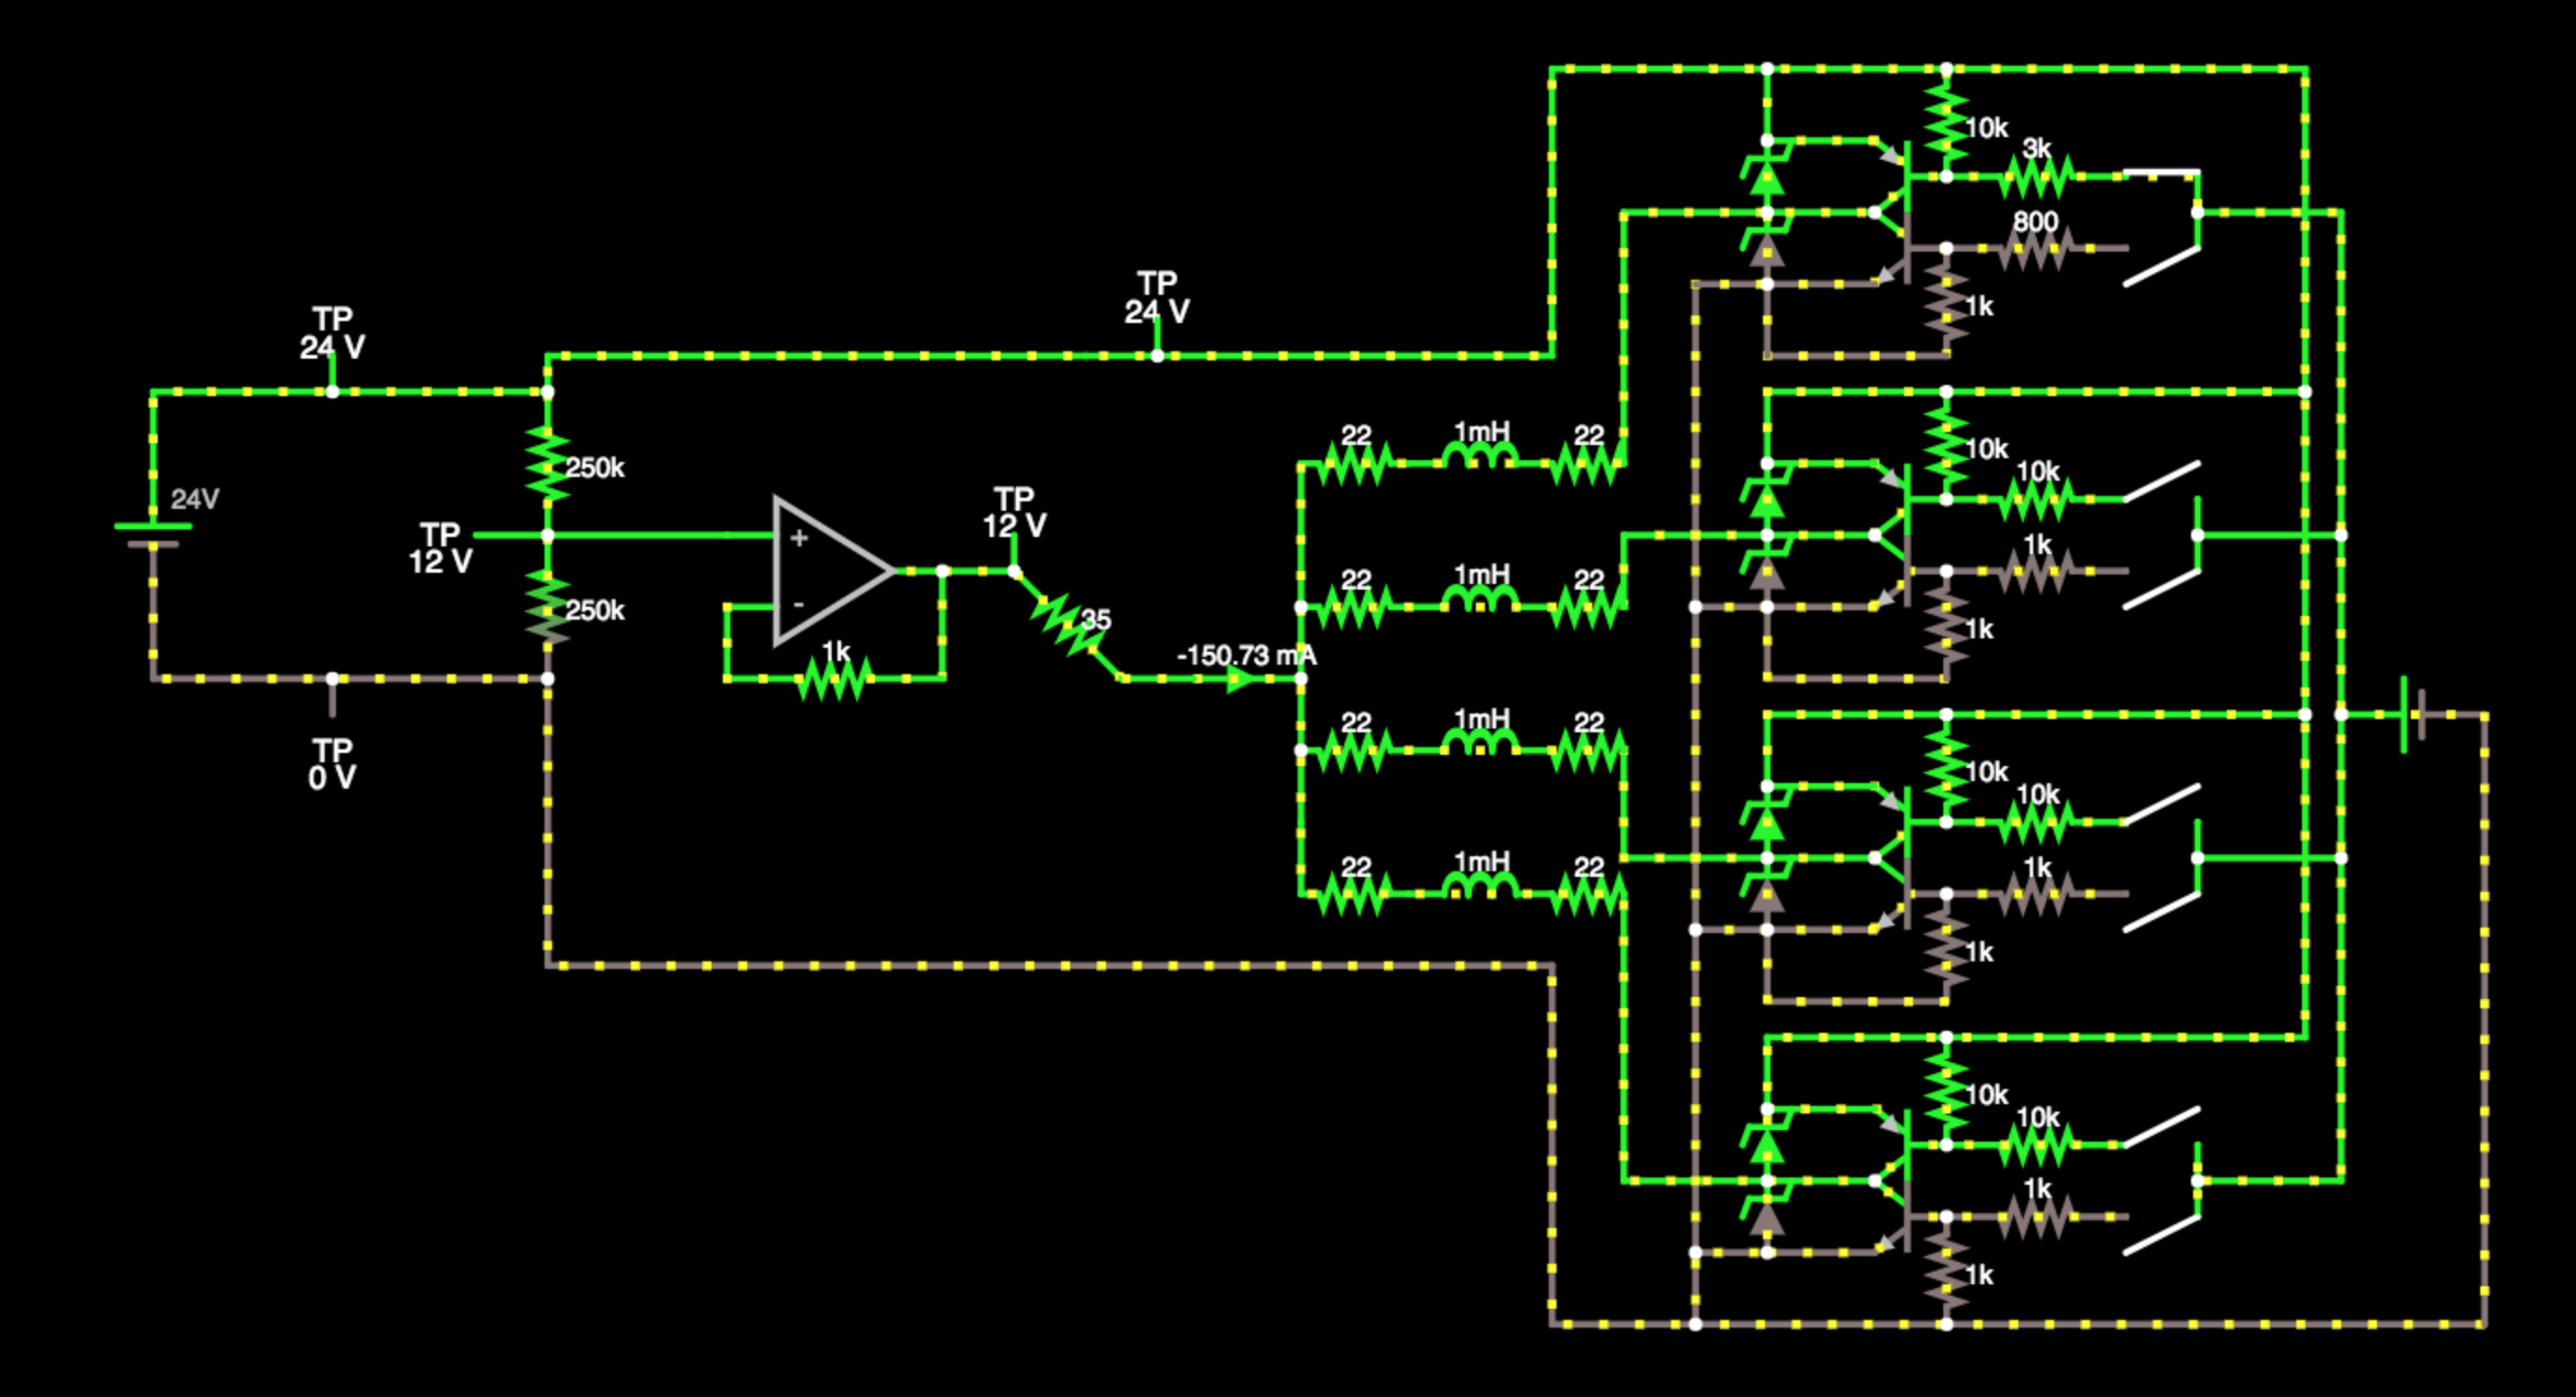 Project Retro Flip Display Pnp 24v Wiring Diagrams For Eyes Photo Initially I Spent A While Messing Around In Falstads Interactive Circuit Simulator Above To Figure Out How Multiplex And